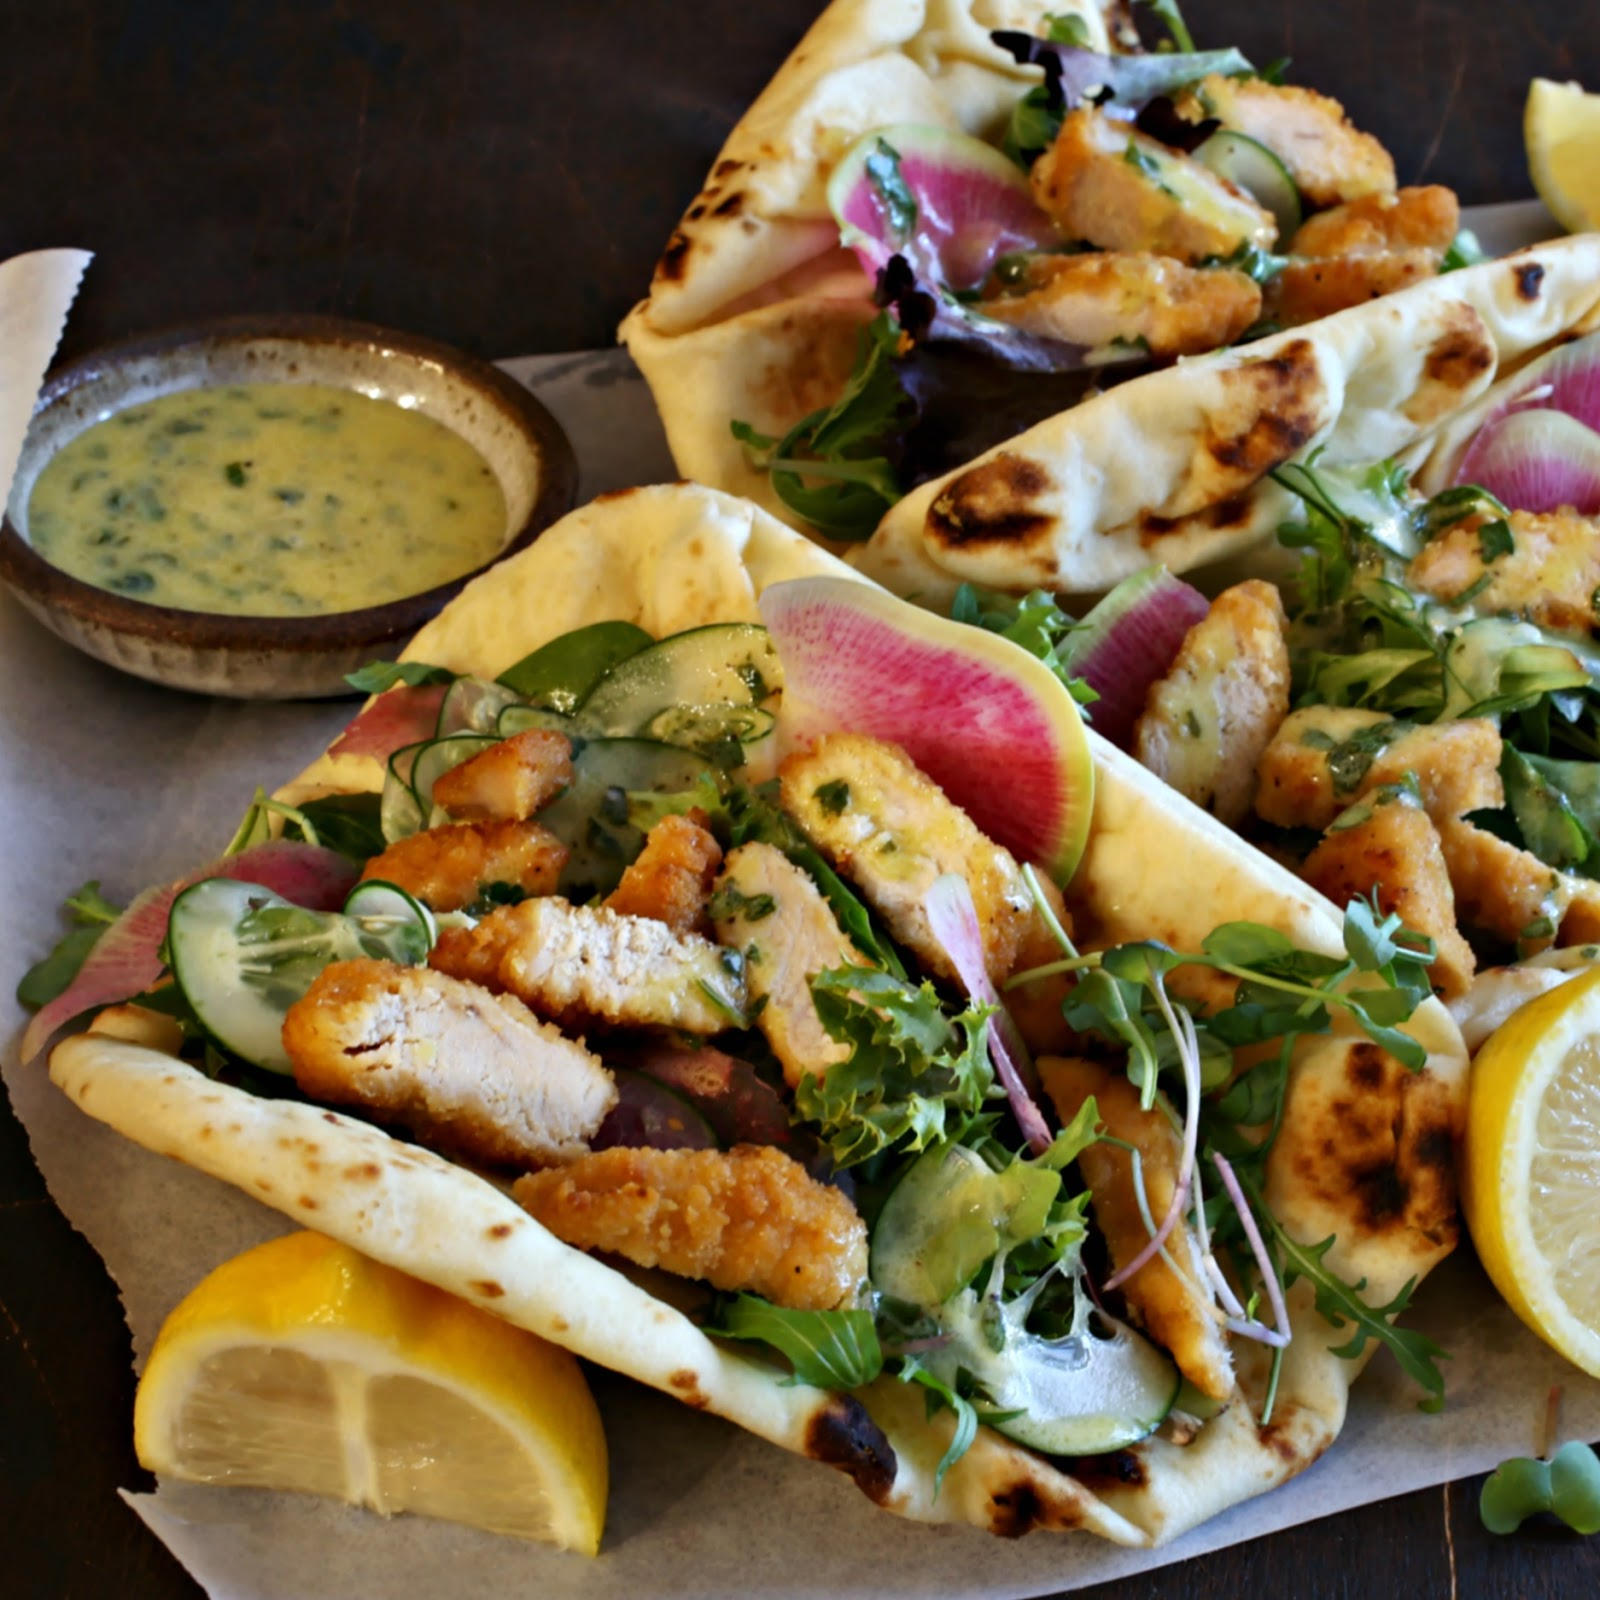 Recipe for crispy chicken pieces, mixed greens and a creamy lemon dressing served in naan bread or a tortilla.